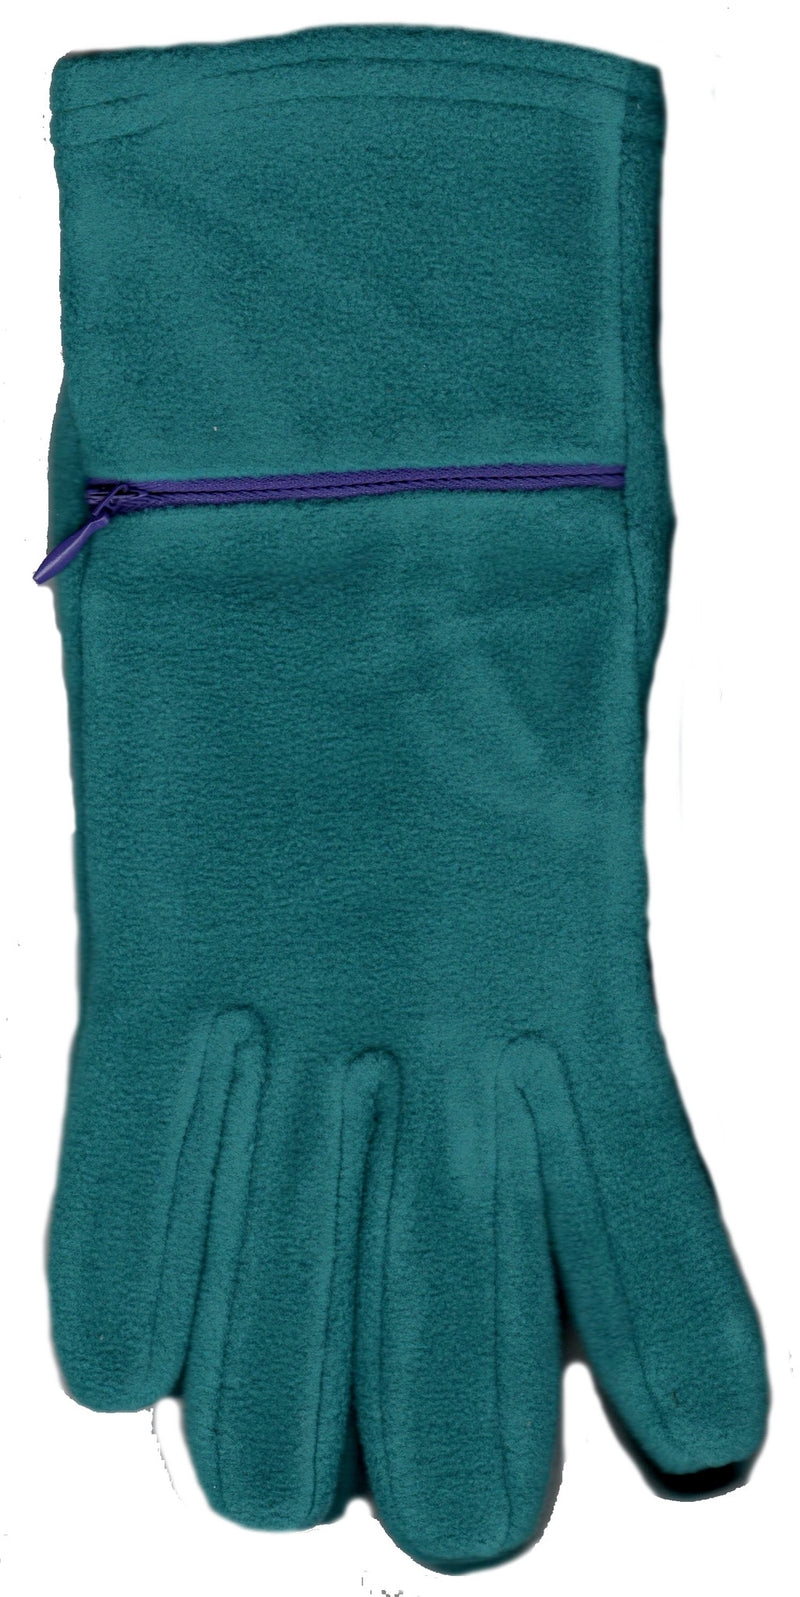 Lauer Touch Sensor Stretch Microfleece Glove Peacock and Iris Zipper